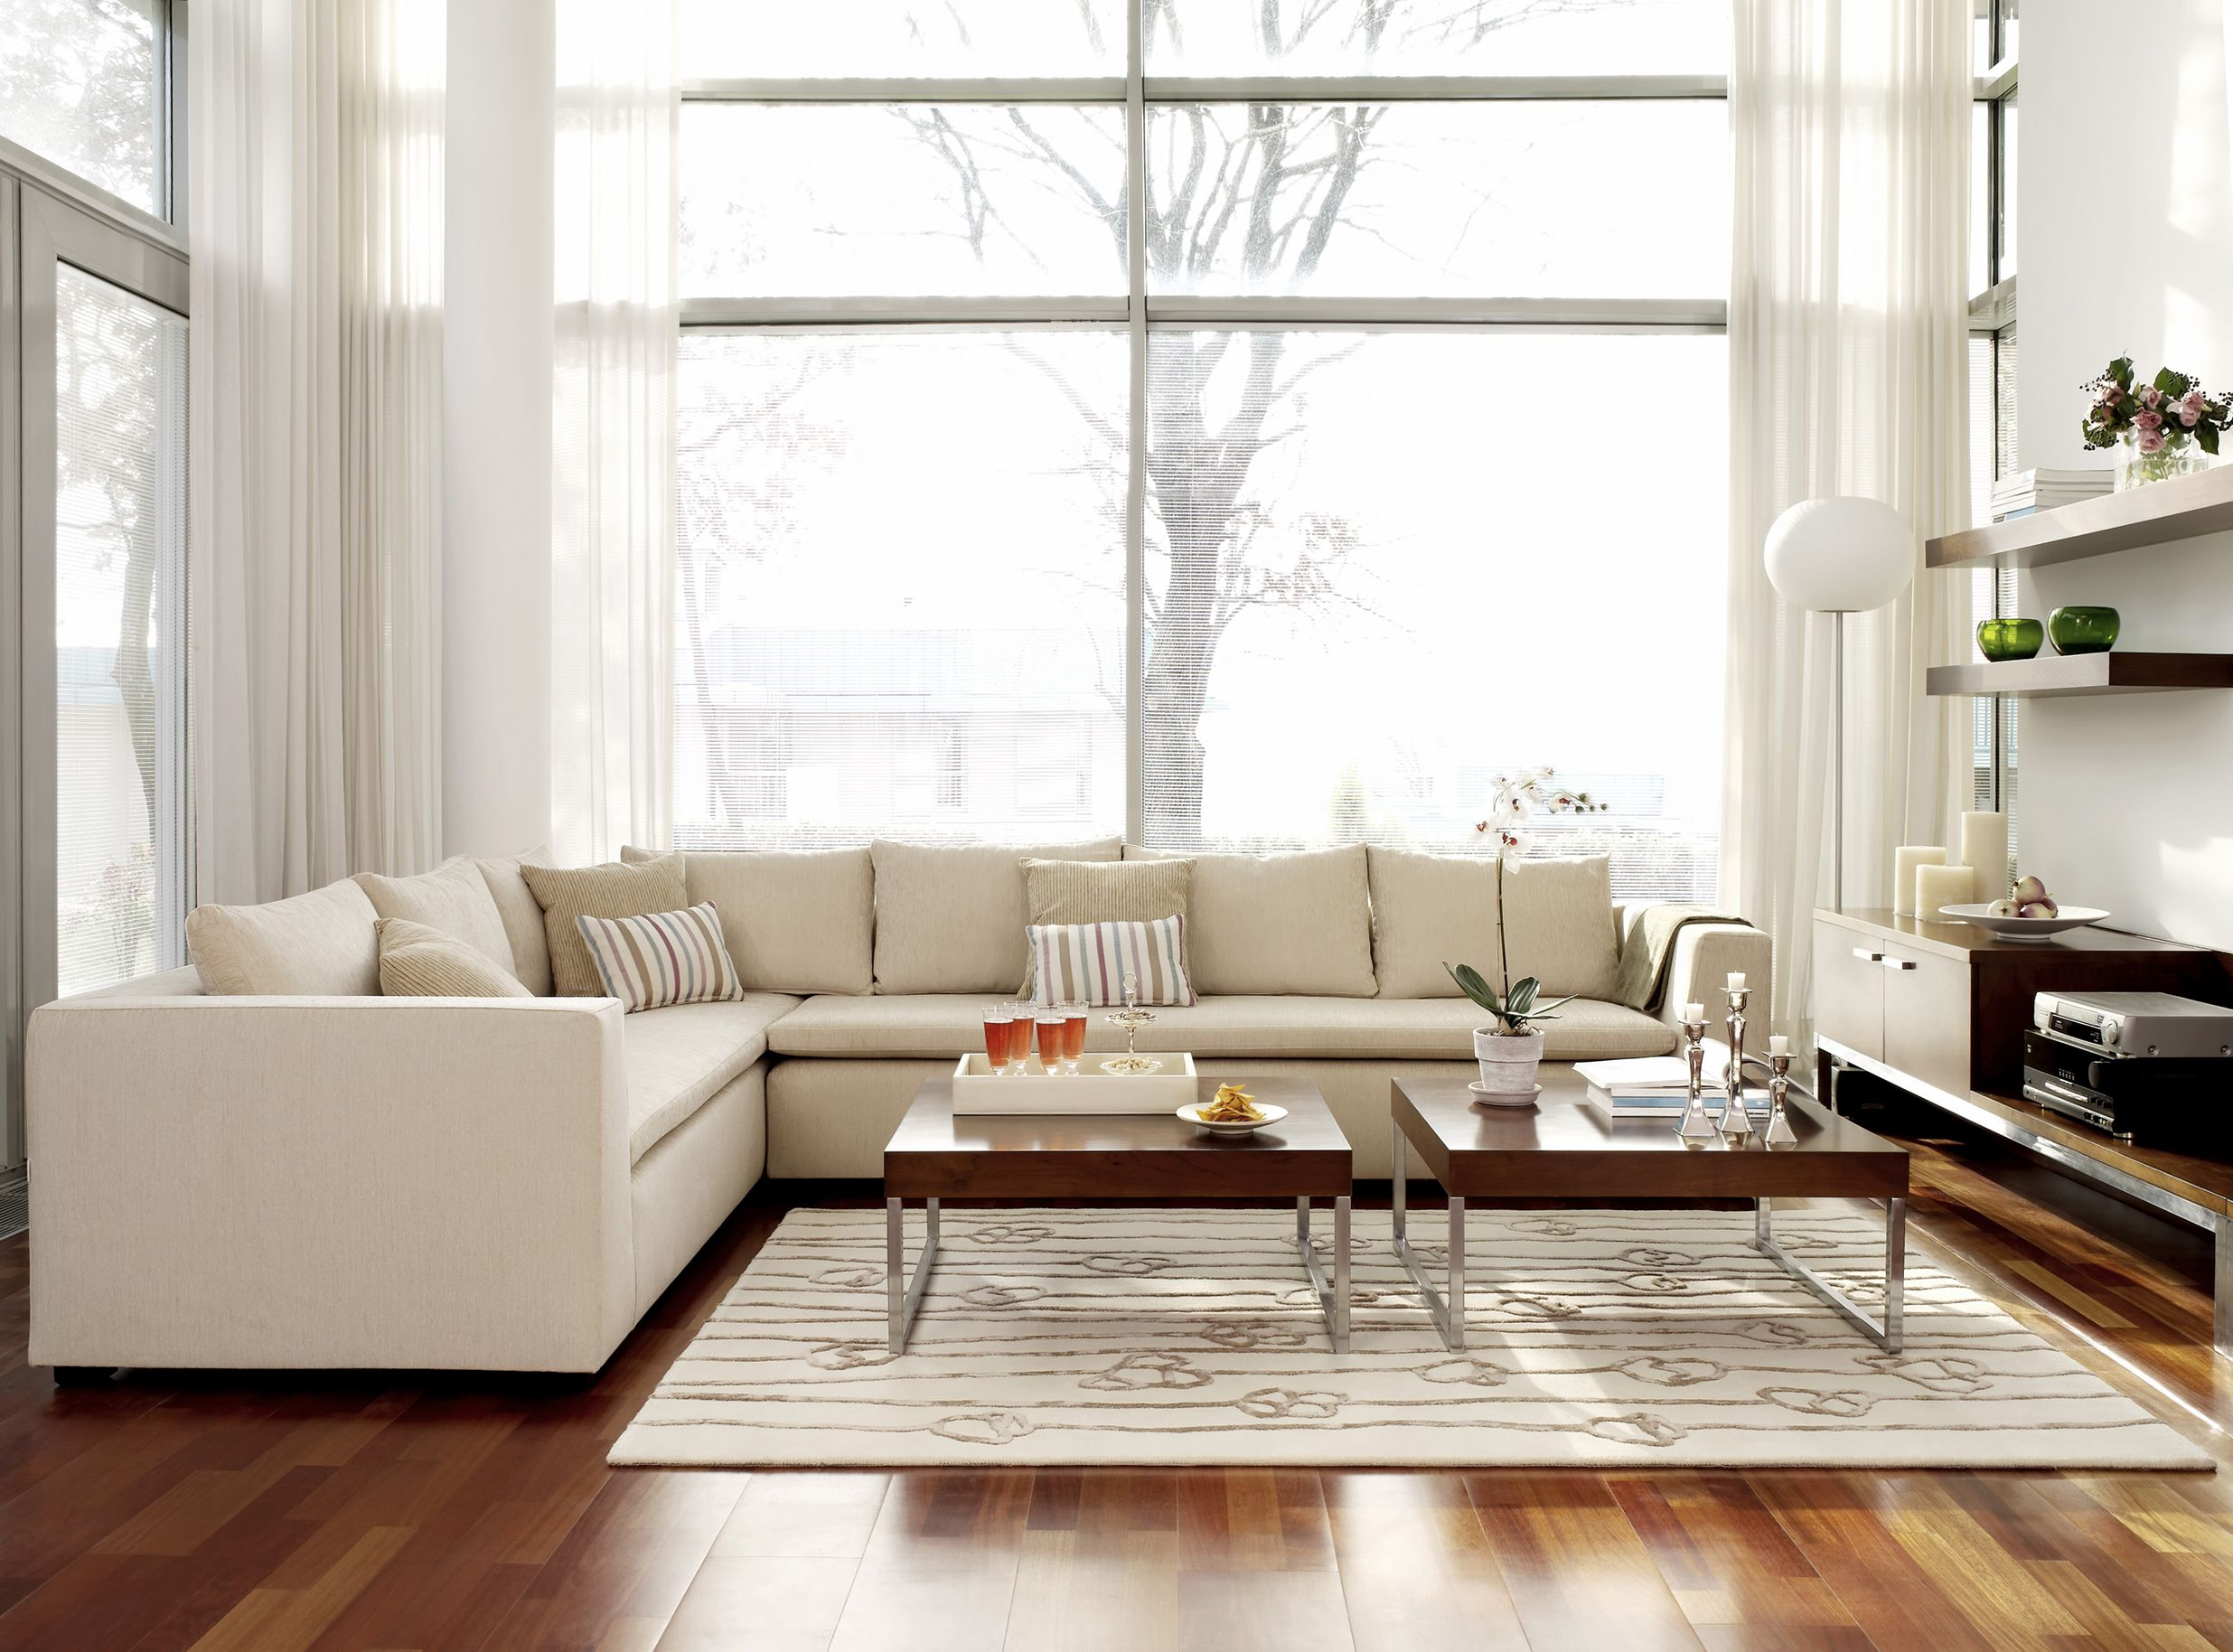 How to use empty space in arranging furniture - Arranging furniture in small spaces concept ...